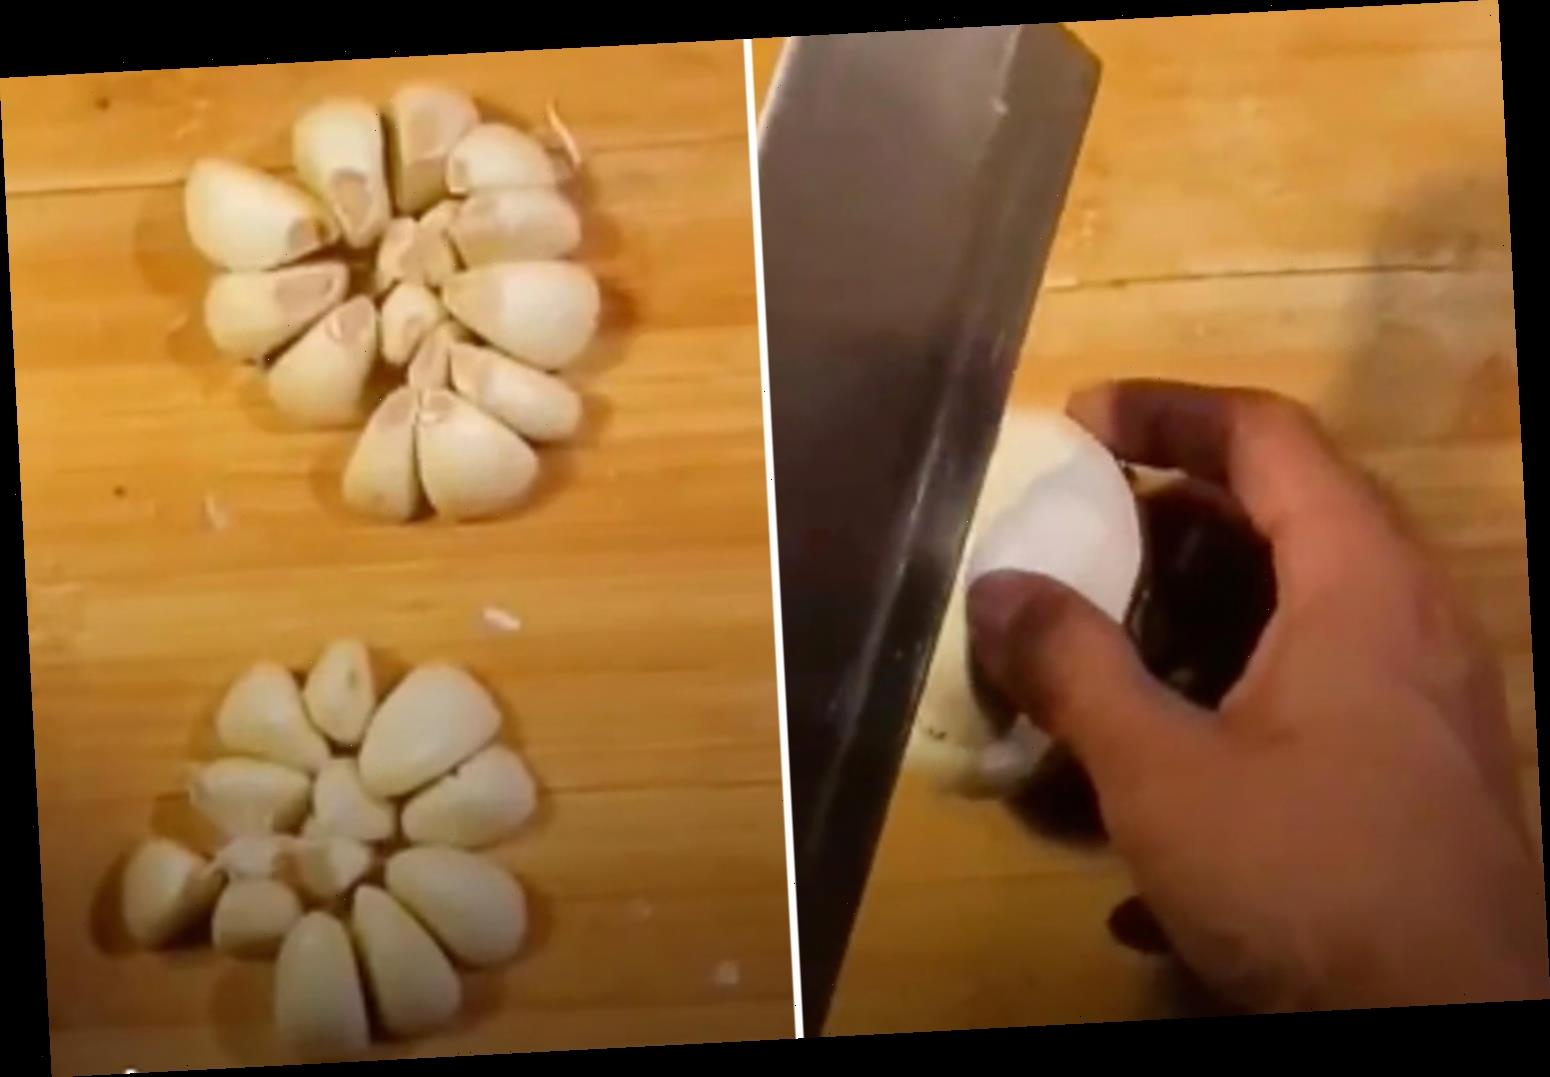 You've been peeling garlic wrong – TikToker shows how to properly get cloves out of bulb